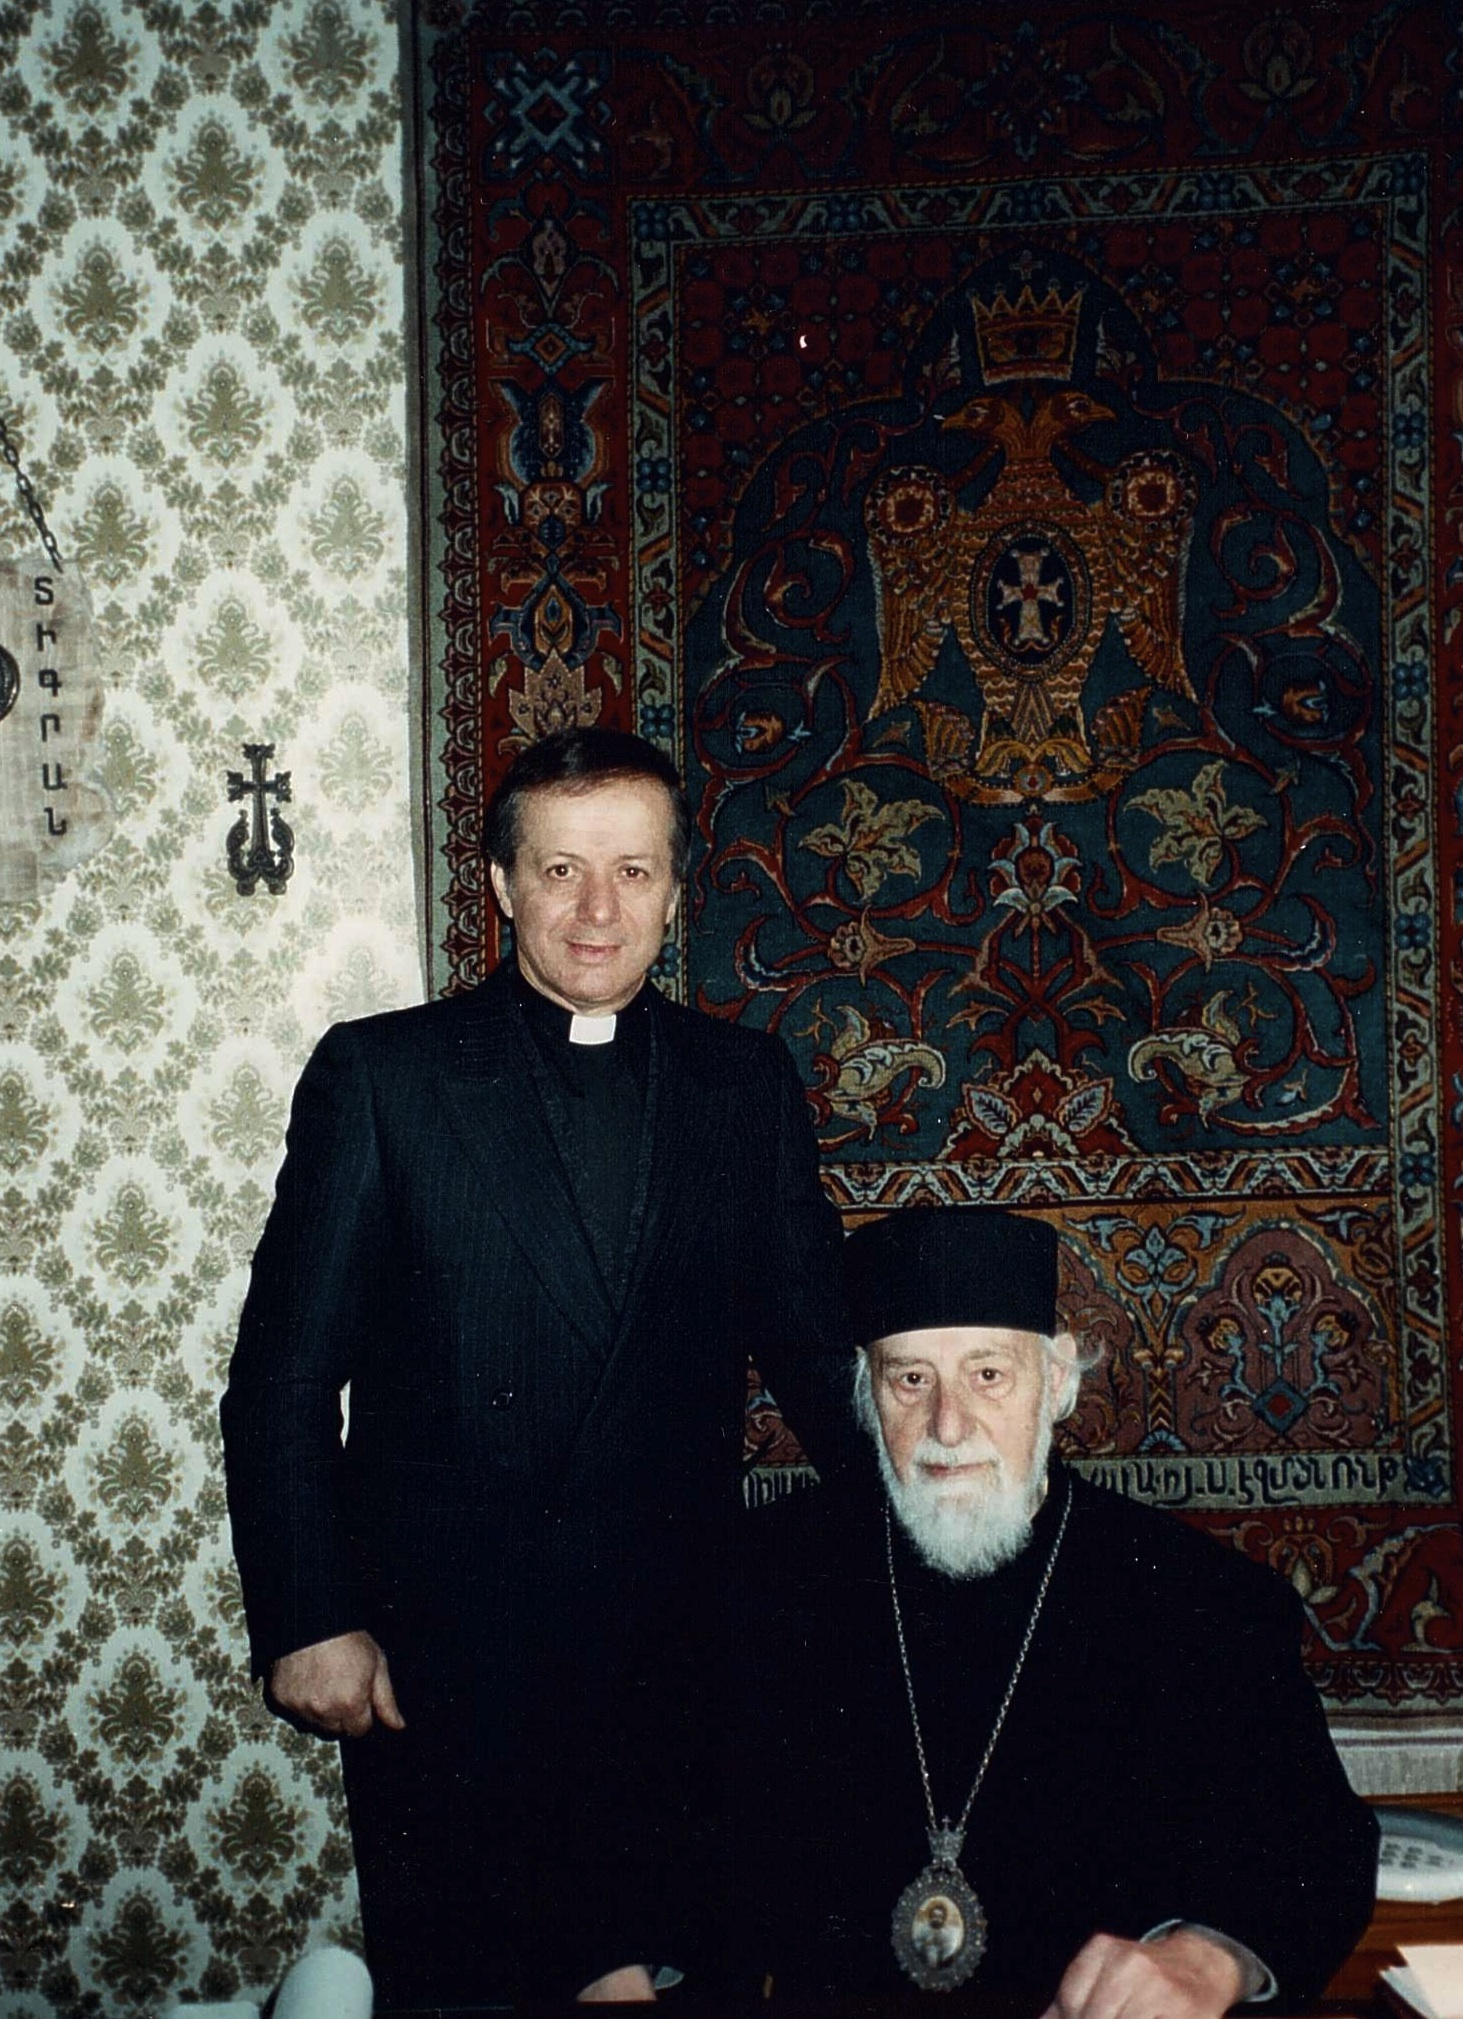 His Holiness Vazken Vehapar of all Armenians .jpg